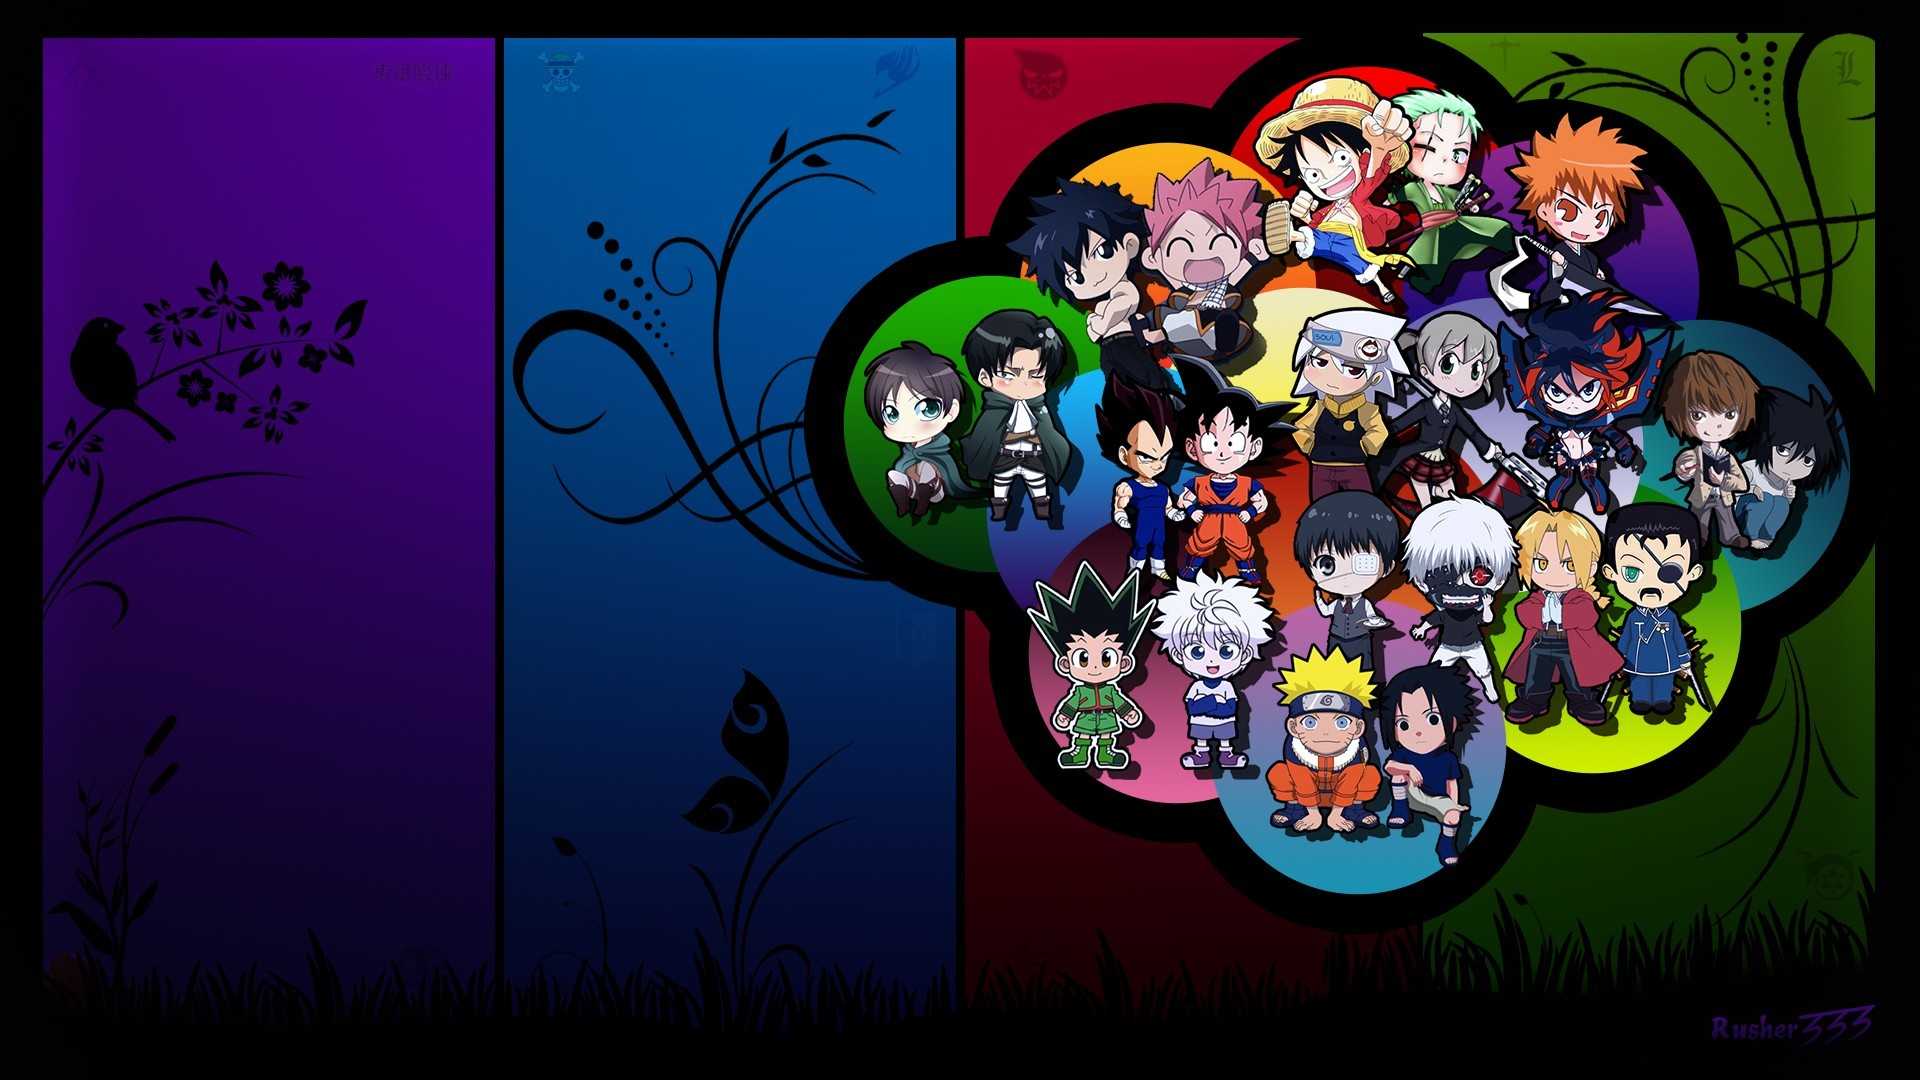 1920x1080 Wallpaper : illustration, window, chibi, Soul Eater, cartoon, glass, Naruto  Shippuuden, Kaneki Ken, Tokyo Ghoul, Dragon Ball, Son Goku, Shingeki no  Kyojin, ...